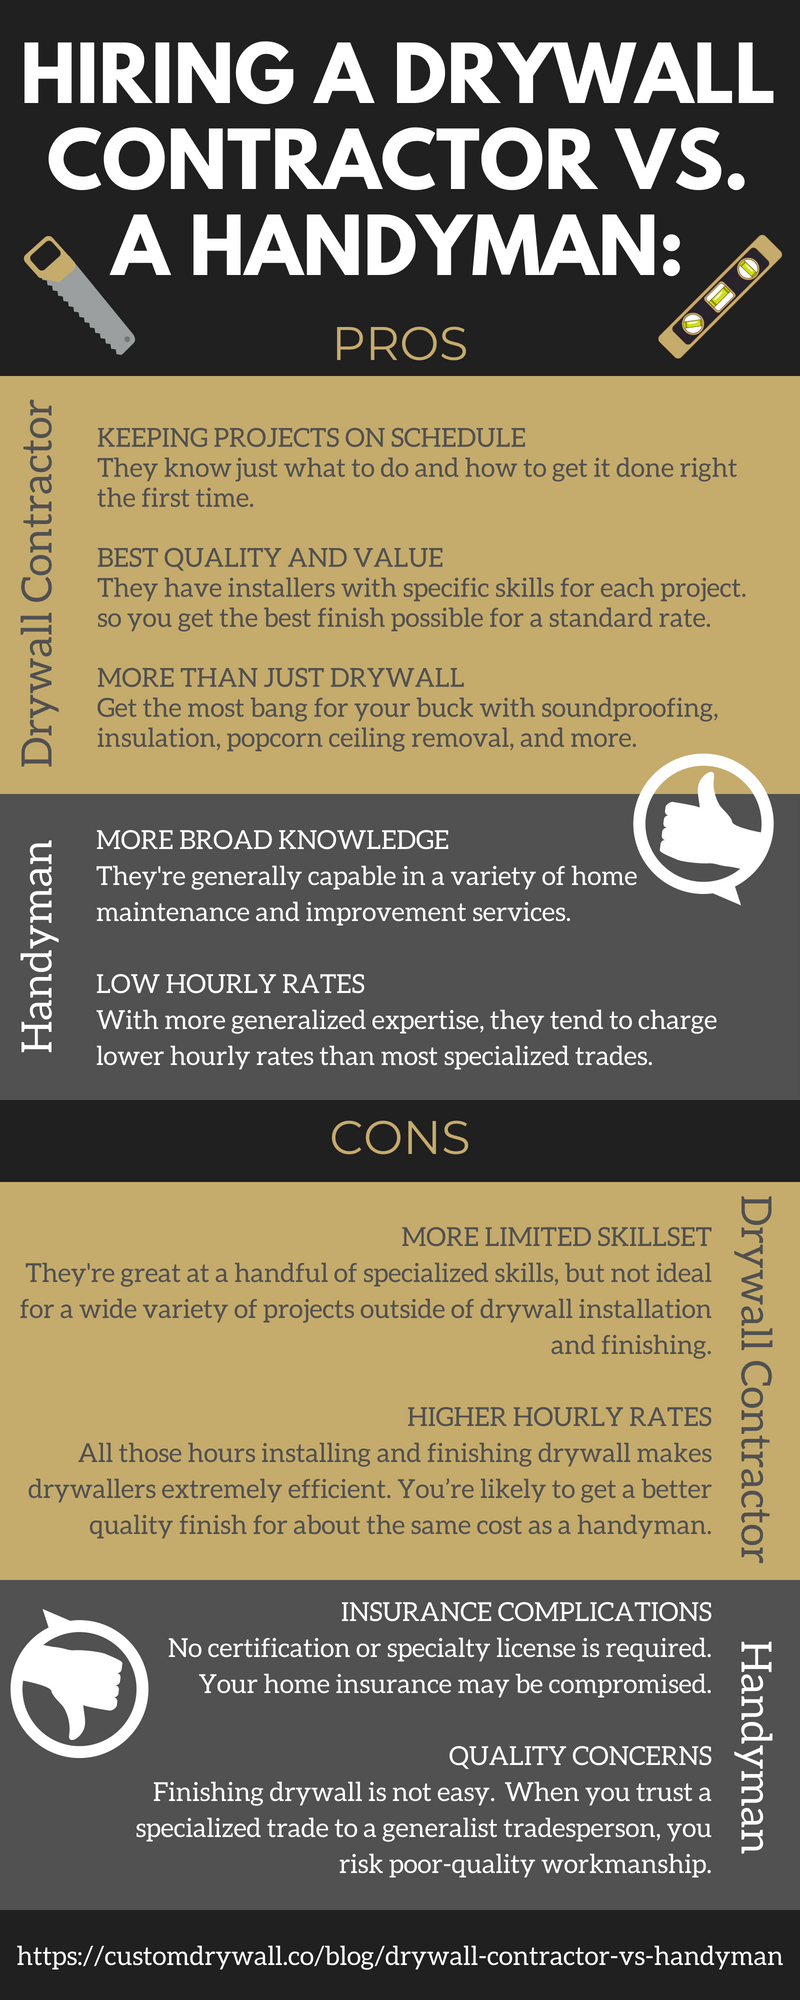 [Infographic] HIRING A DRYWALL CONTRACTOR VS. A HANDYMAN.png